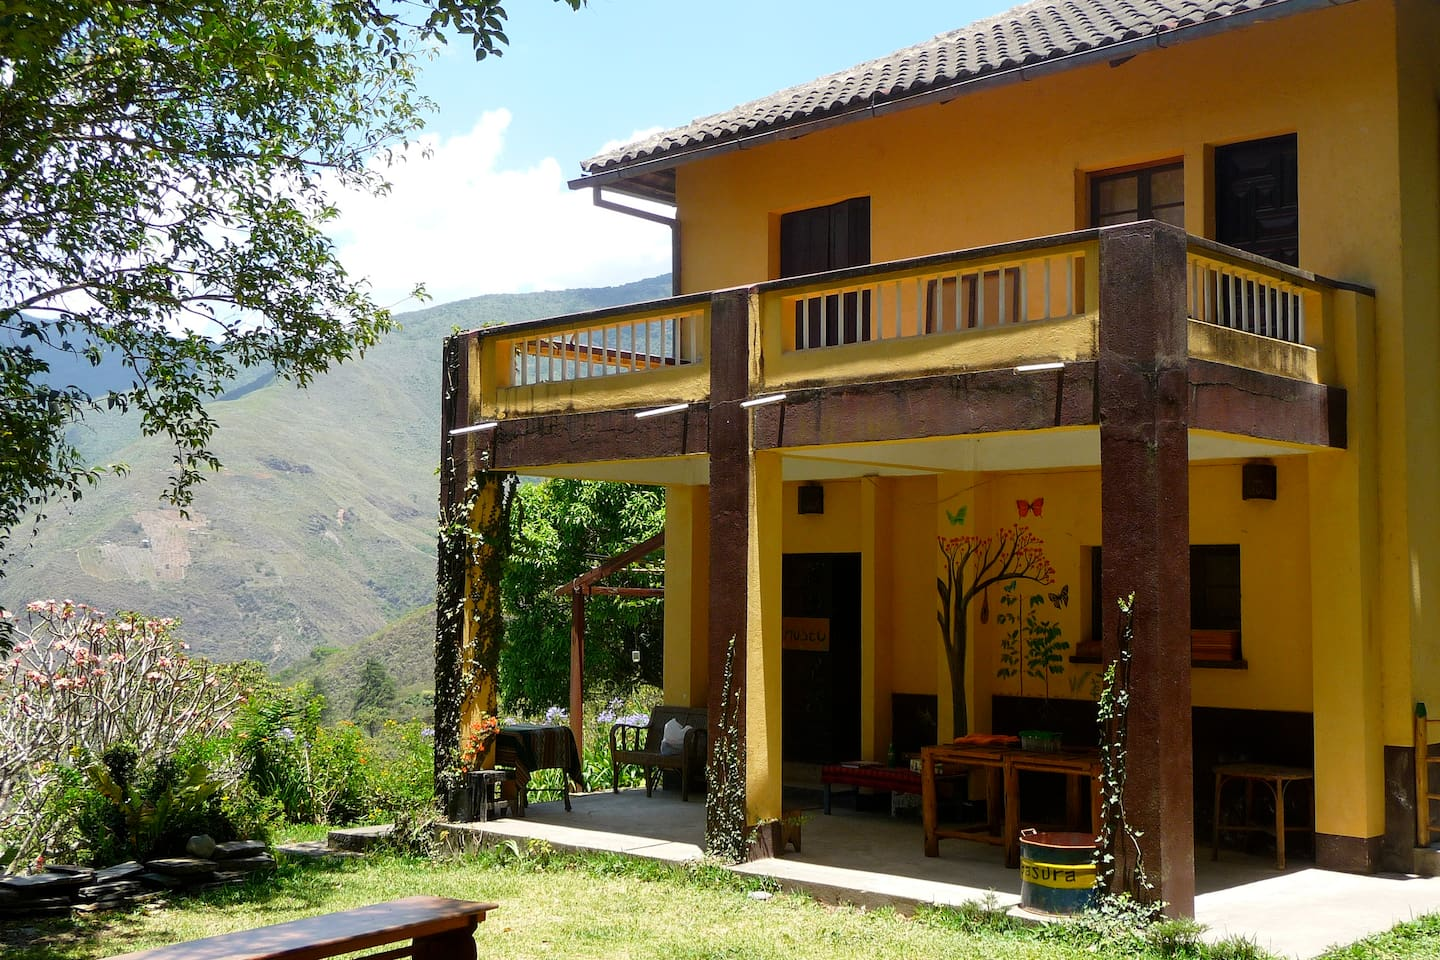 Tarapari Guesthouse & Biodiversity Garden - Bed and breakfasts for ...